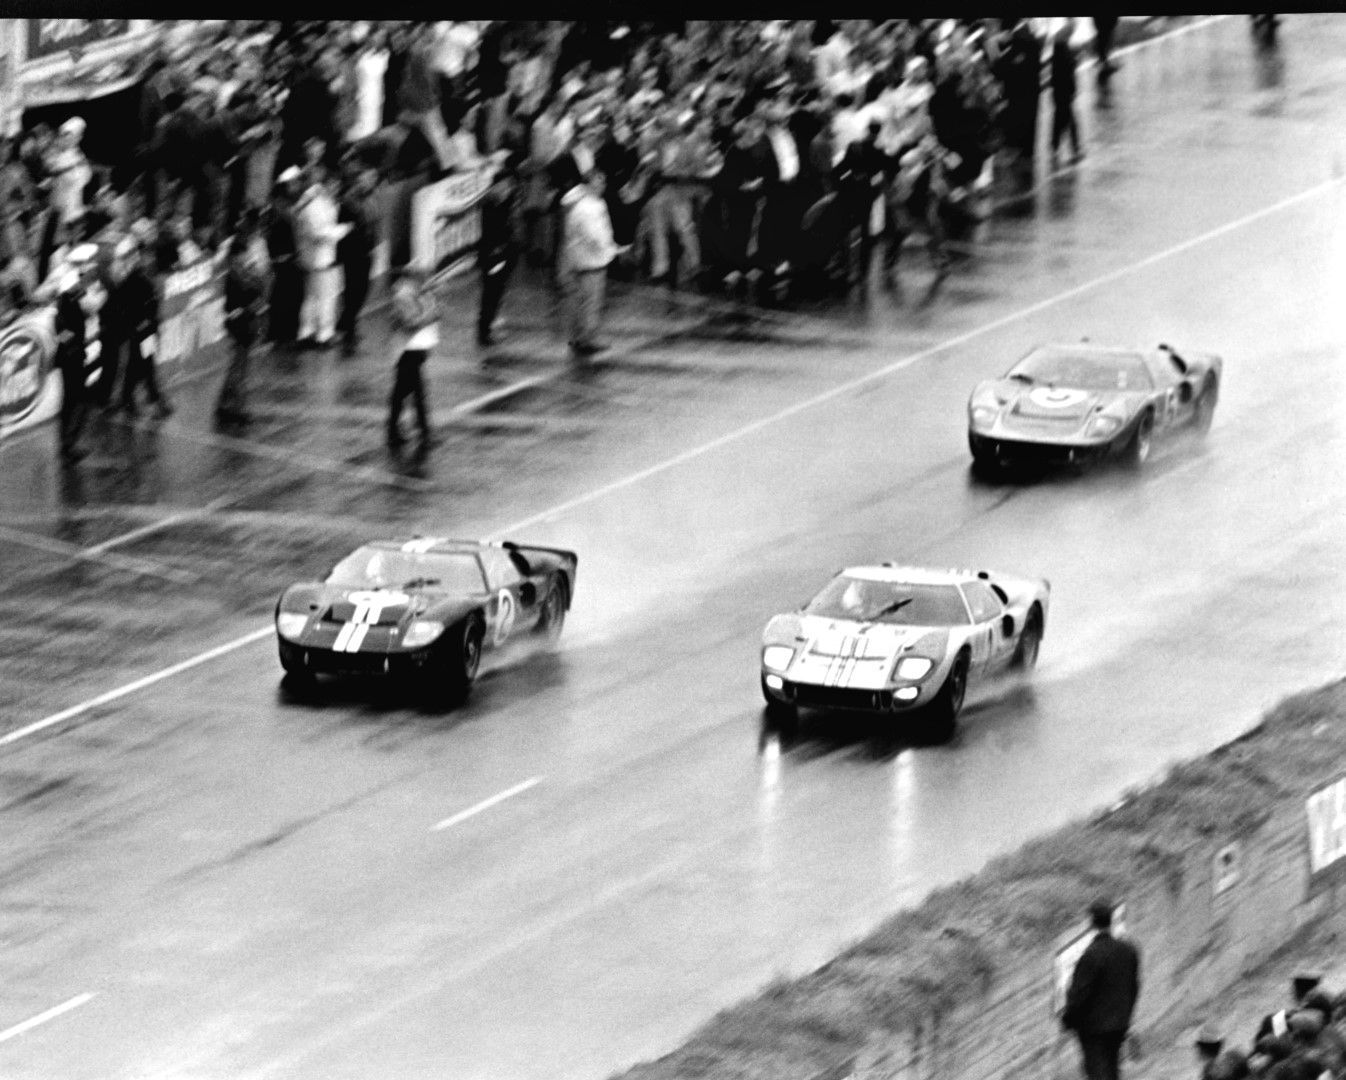 Trio Of Ford Gt40 Mk Iis Cross Finish Line At Le Mans 1966 Ford Racing Ford Gt40 Ford Gt